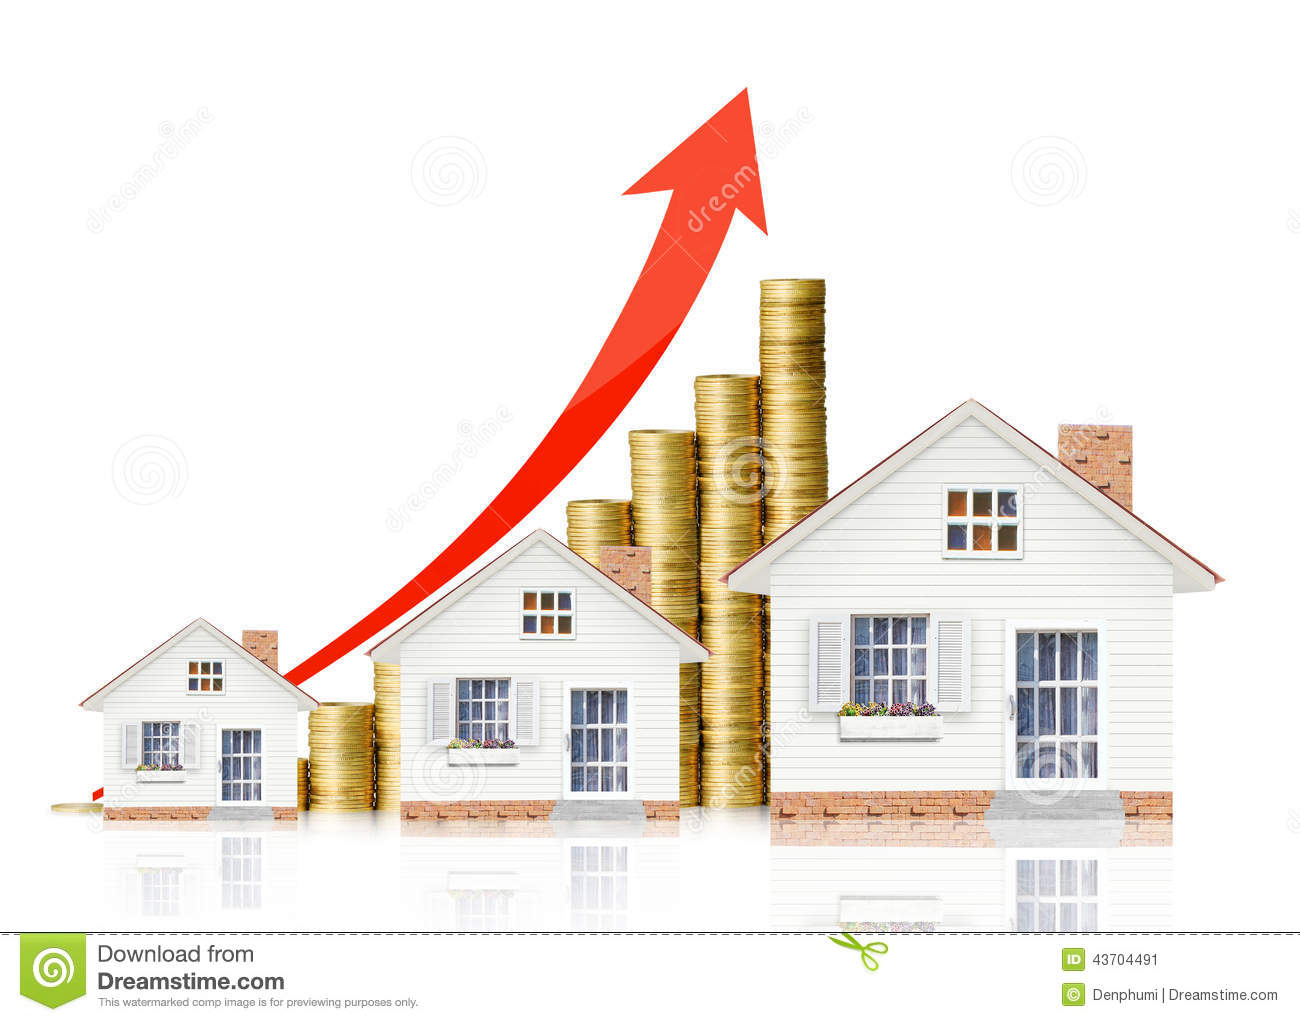 Property value residential loan purchase agreement to Mortgage to buy land